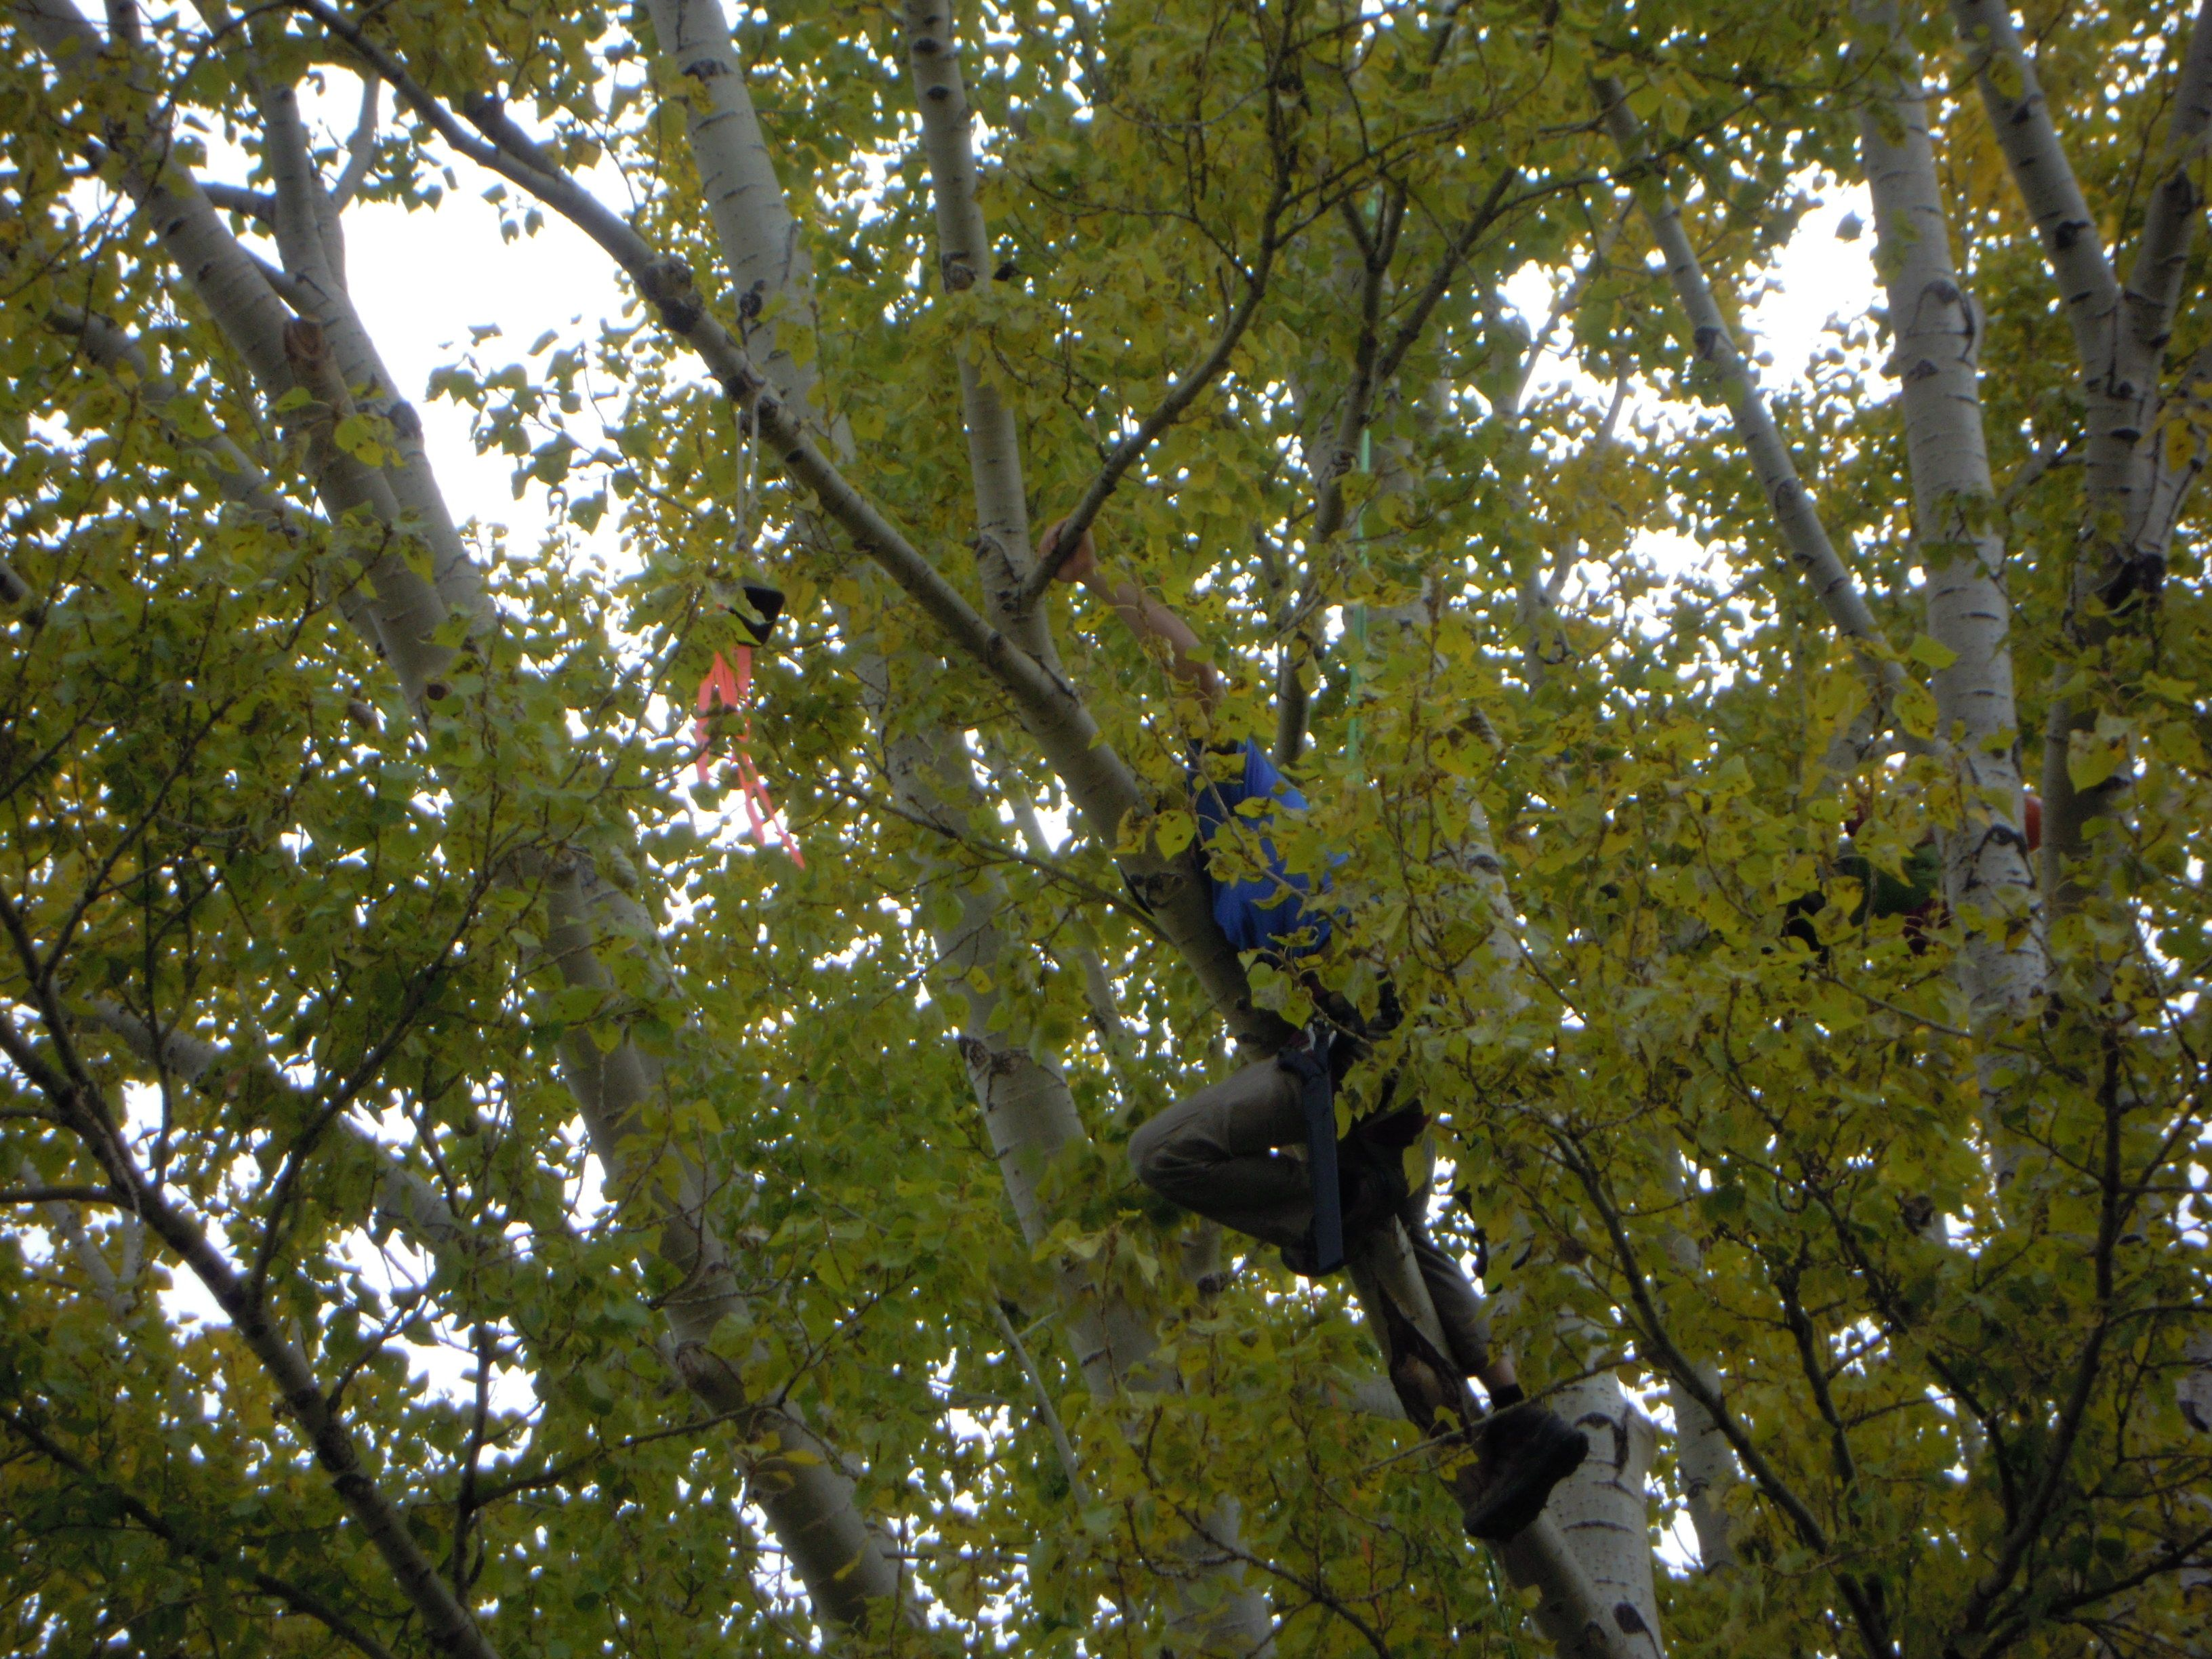 isa arborist certification study guide pdf